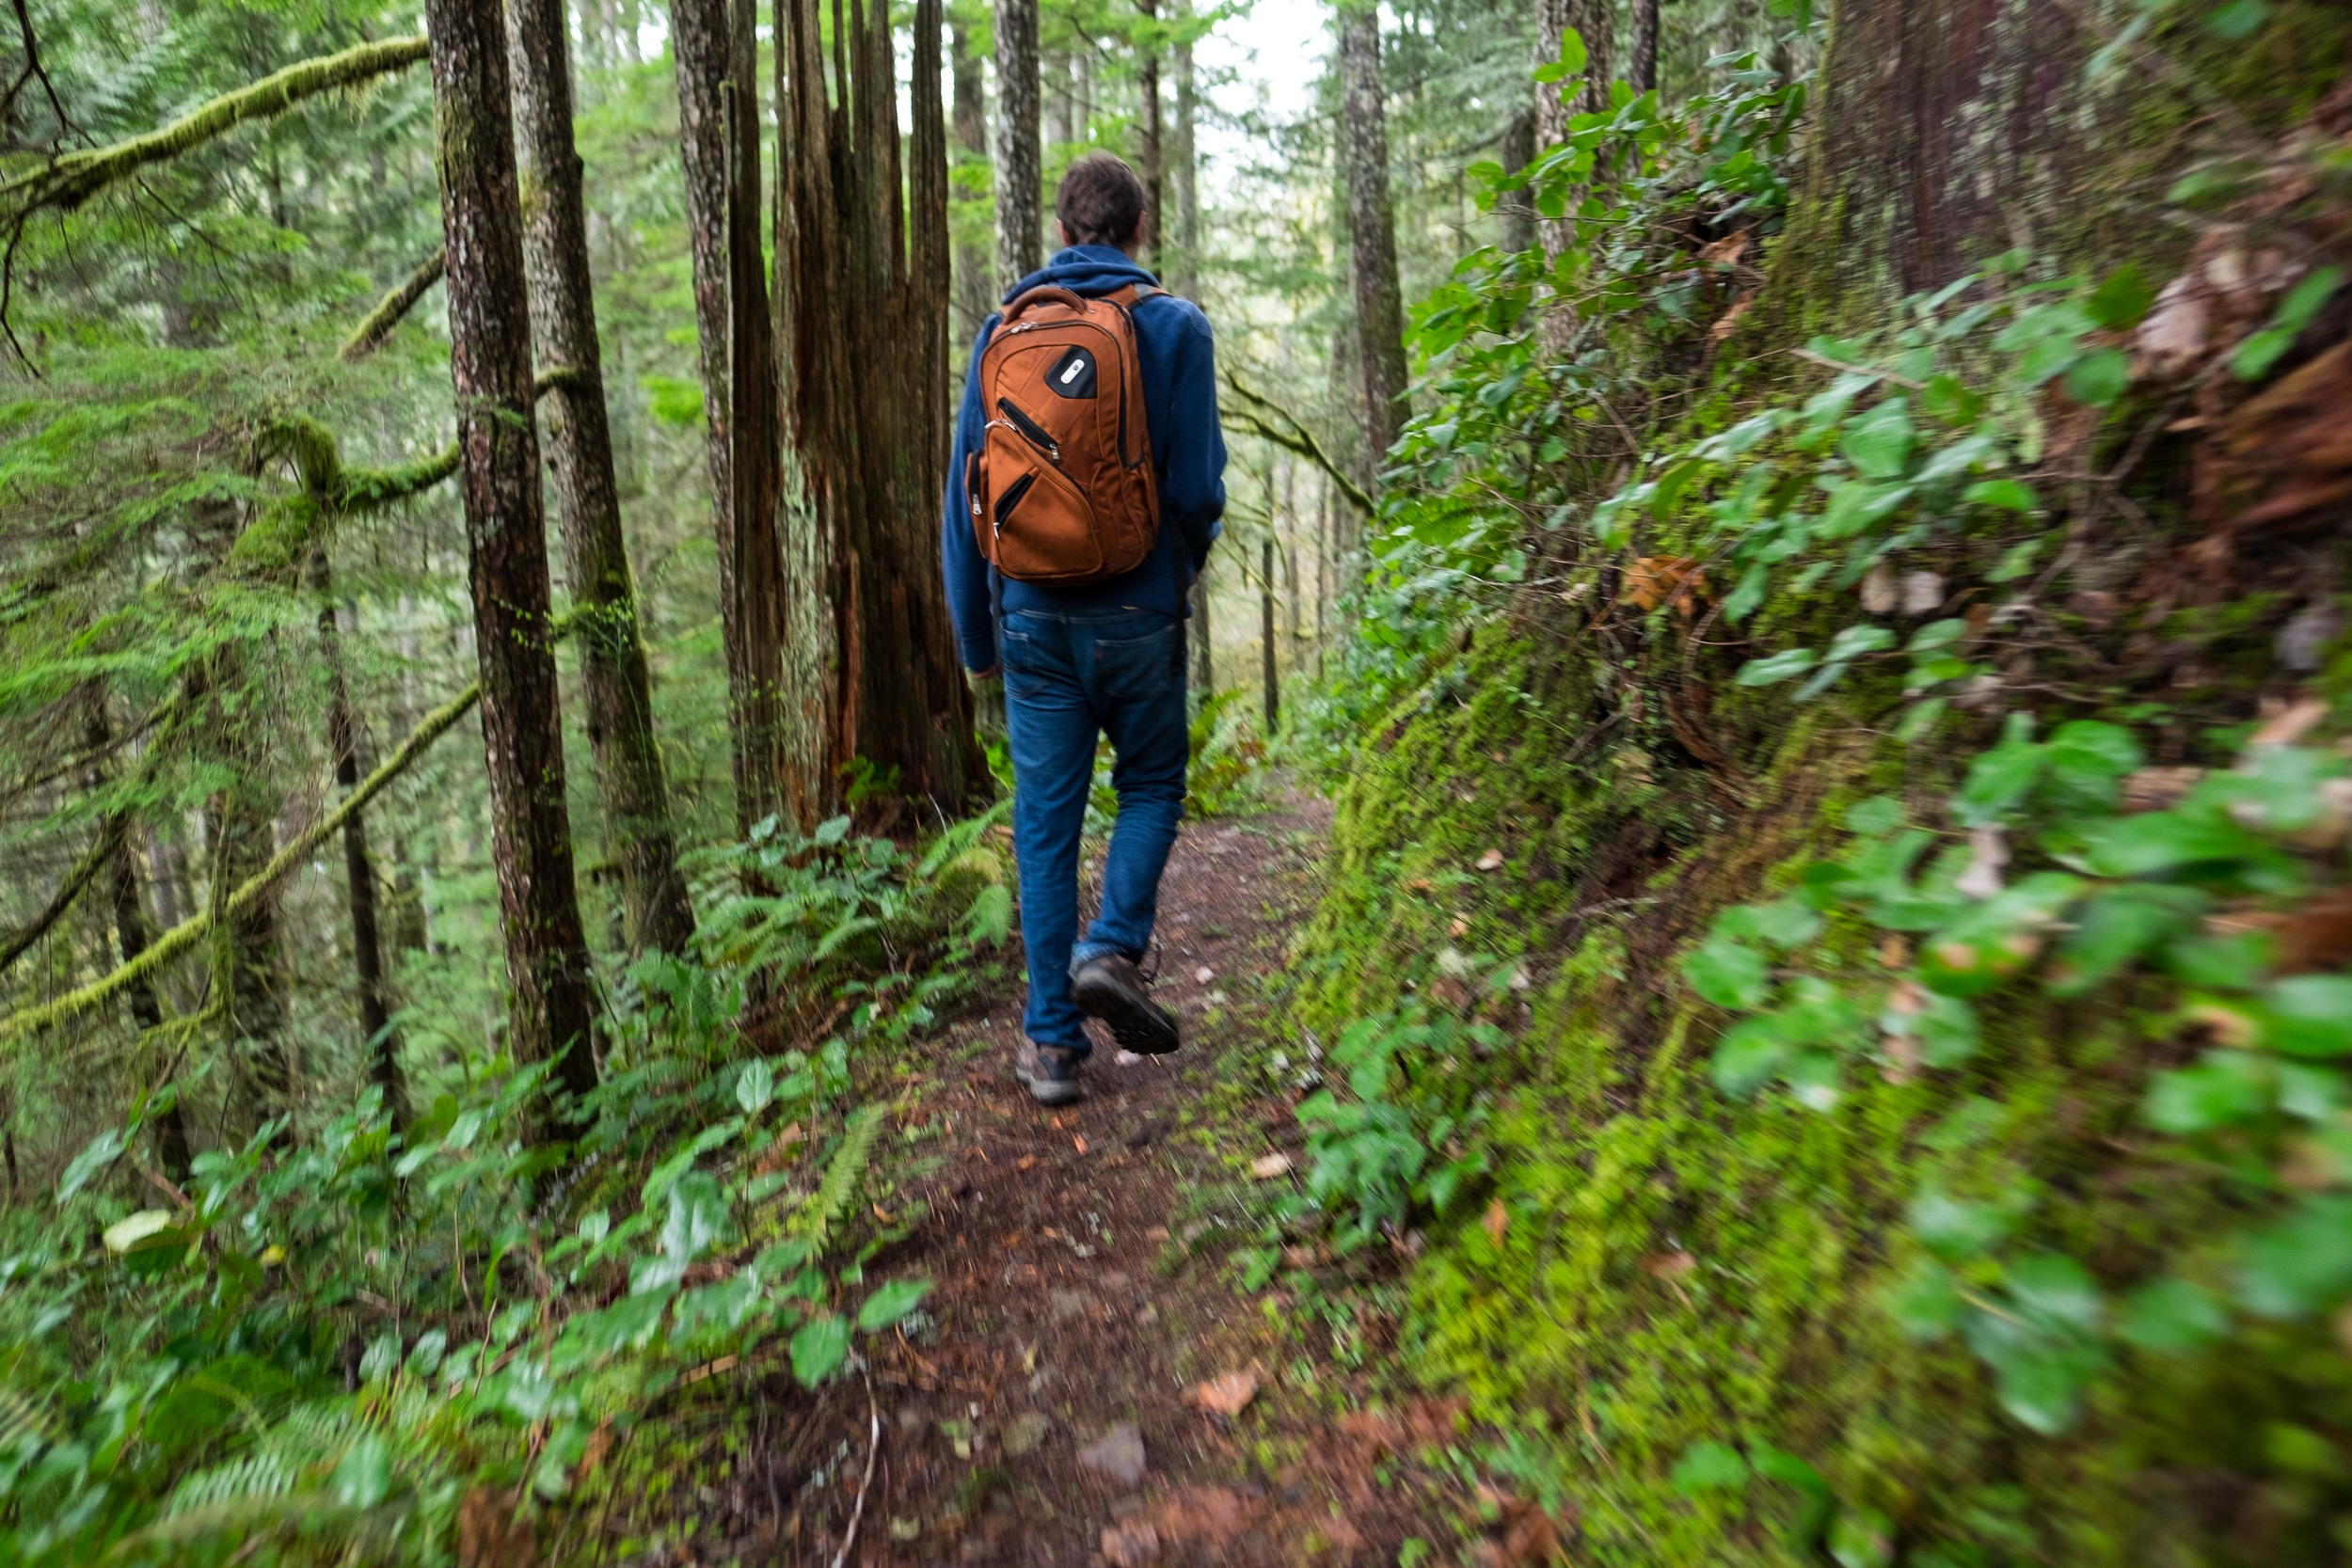 Hiking on the Fallsview Canyon loop in the Olympic National Forest.